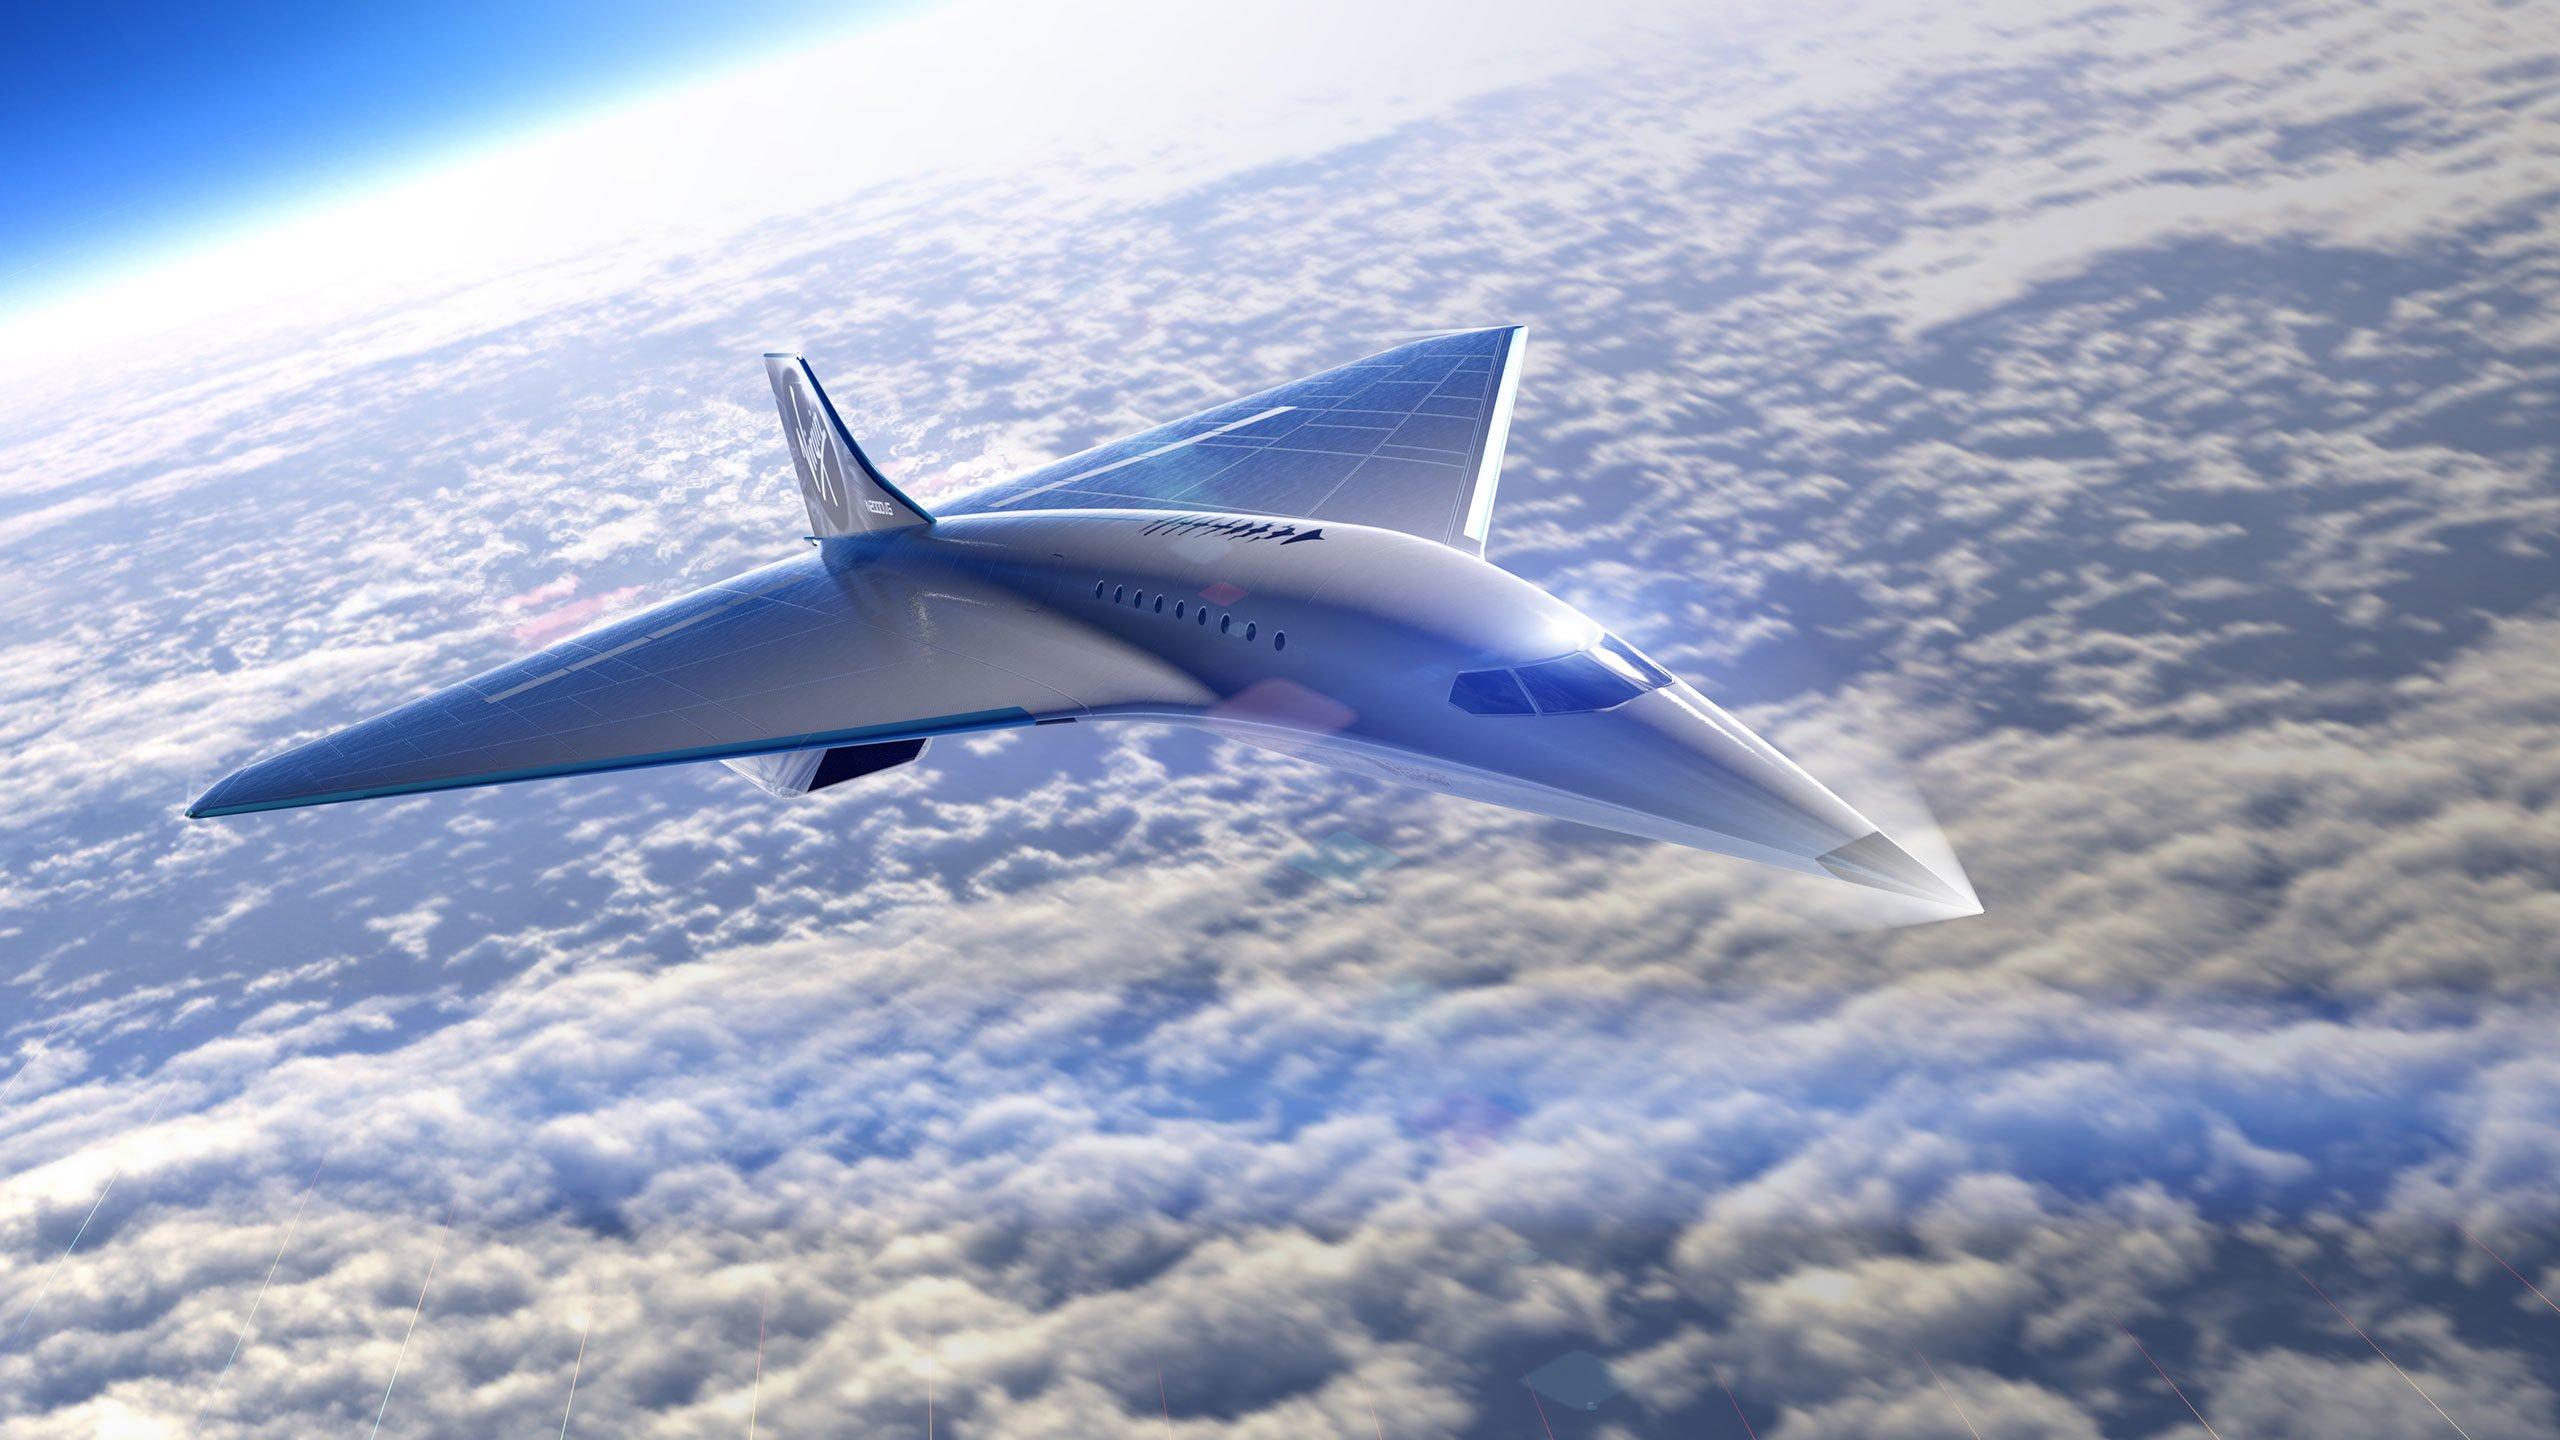 Virgin Galactic's supersonic jet capable of speeds over Mach 3